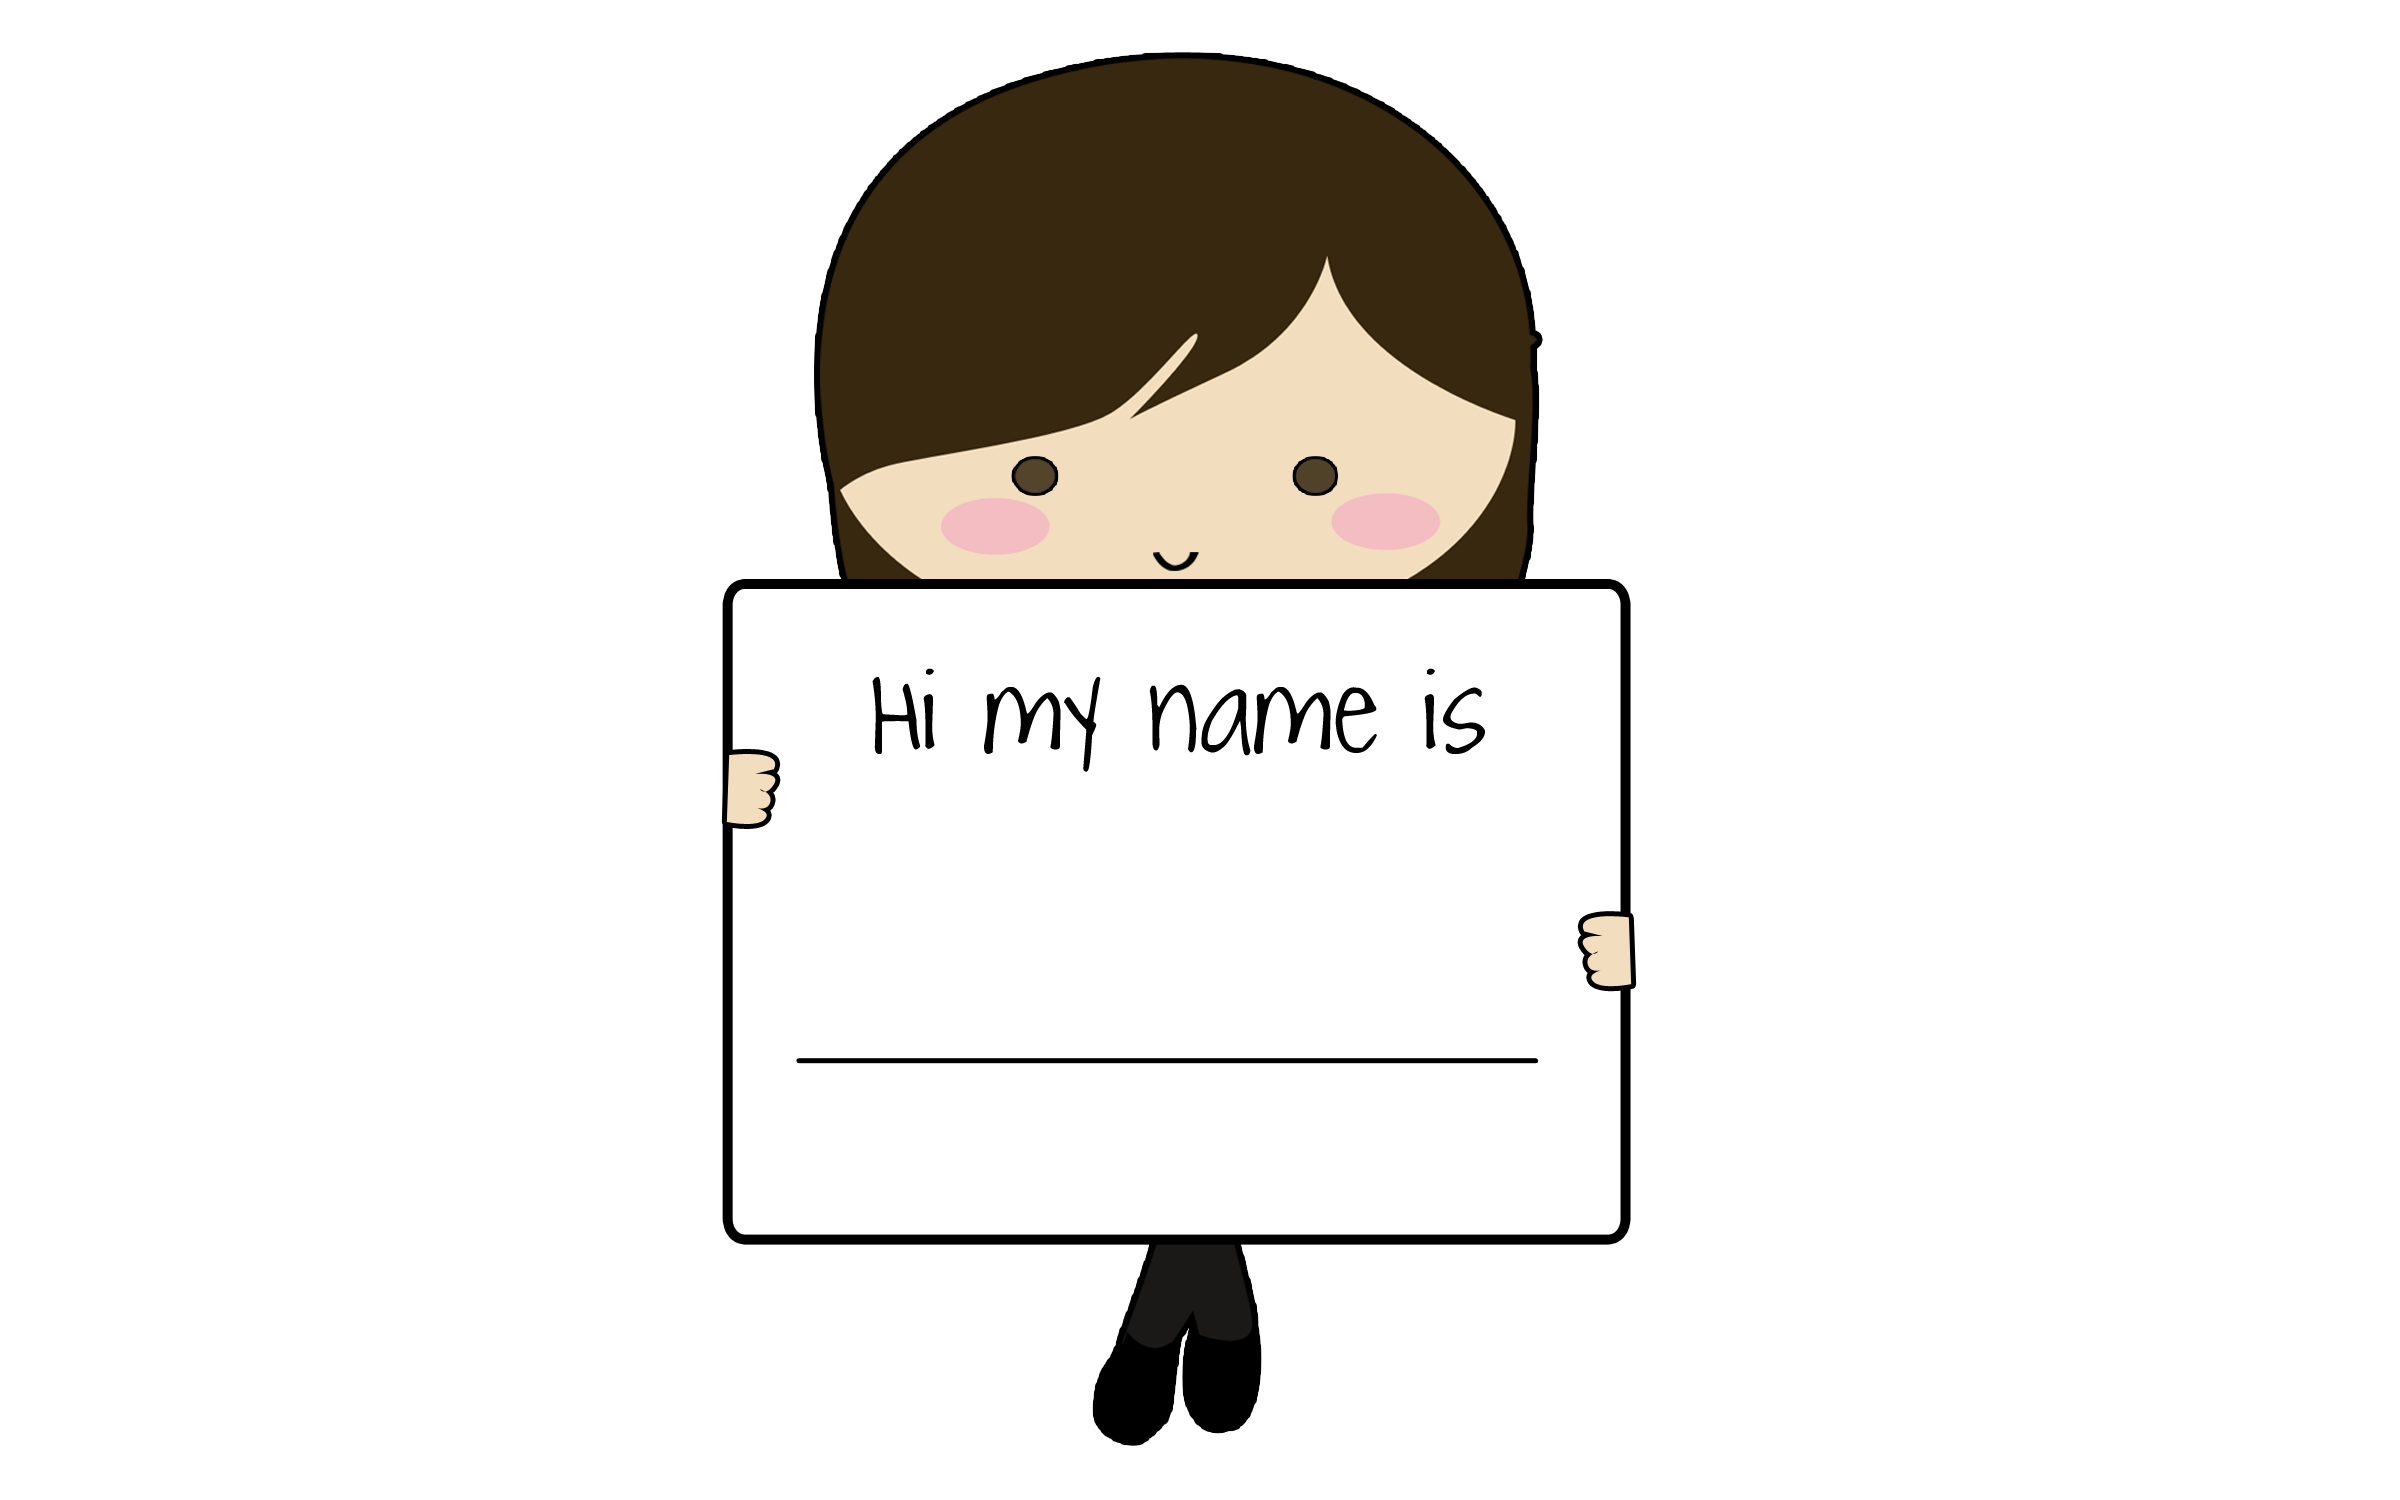 Name clipart name tag. Learning graphic design child